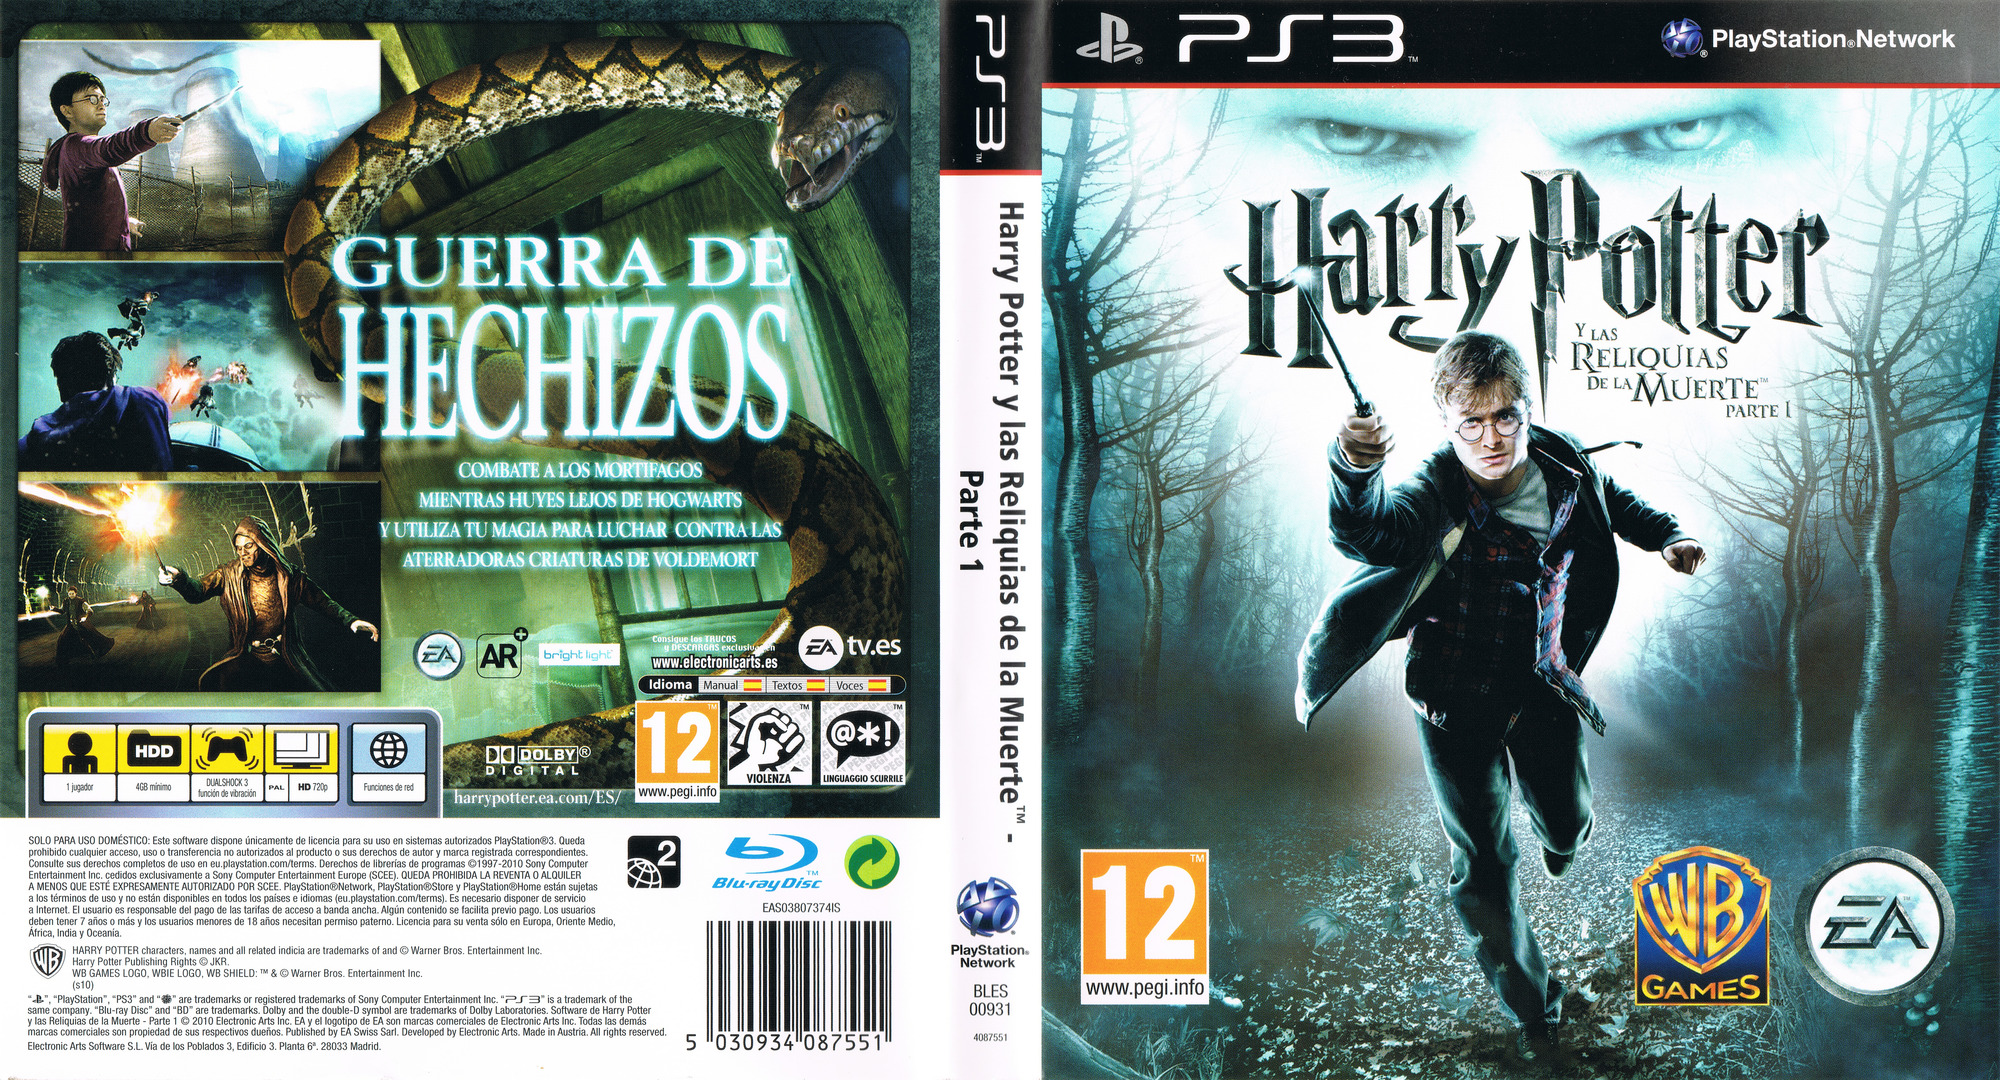 Harry Potter y Las Reliquias de la Muerte: Parte 1 PS3 coverfullHQ (BLES00931)